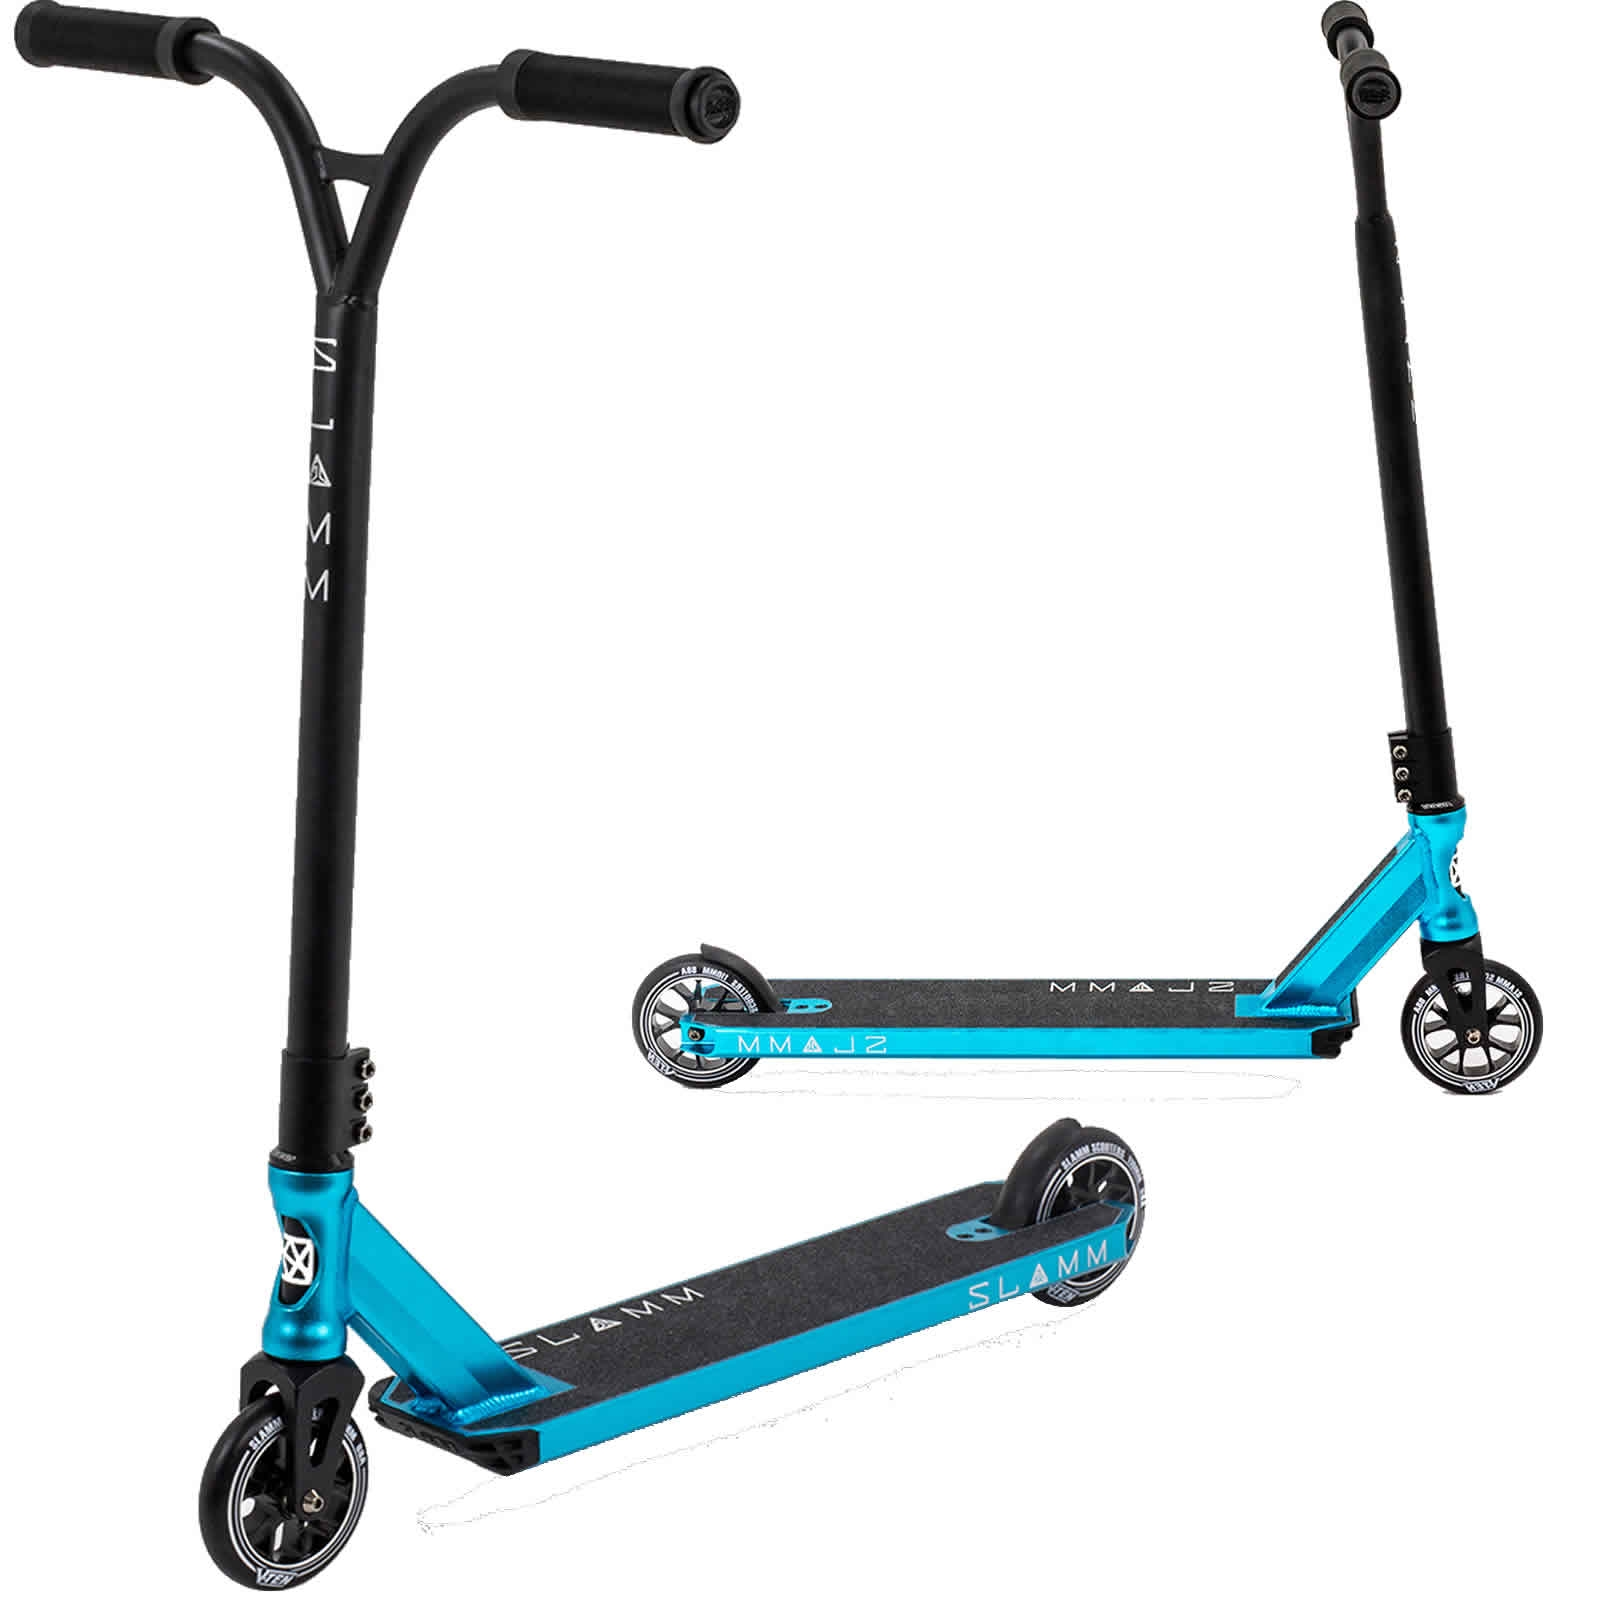 An image of SLAMM Assault IV Stunt Scooter - Blue